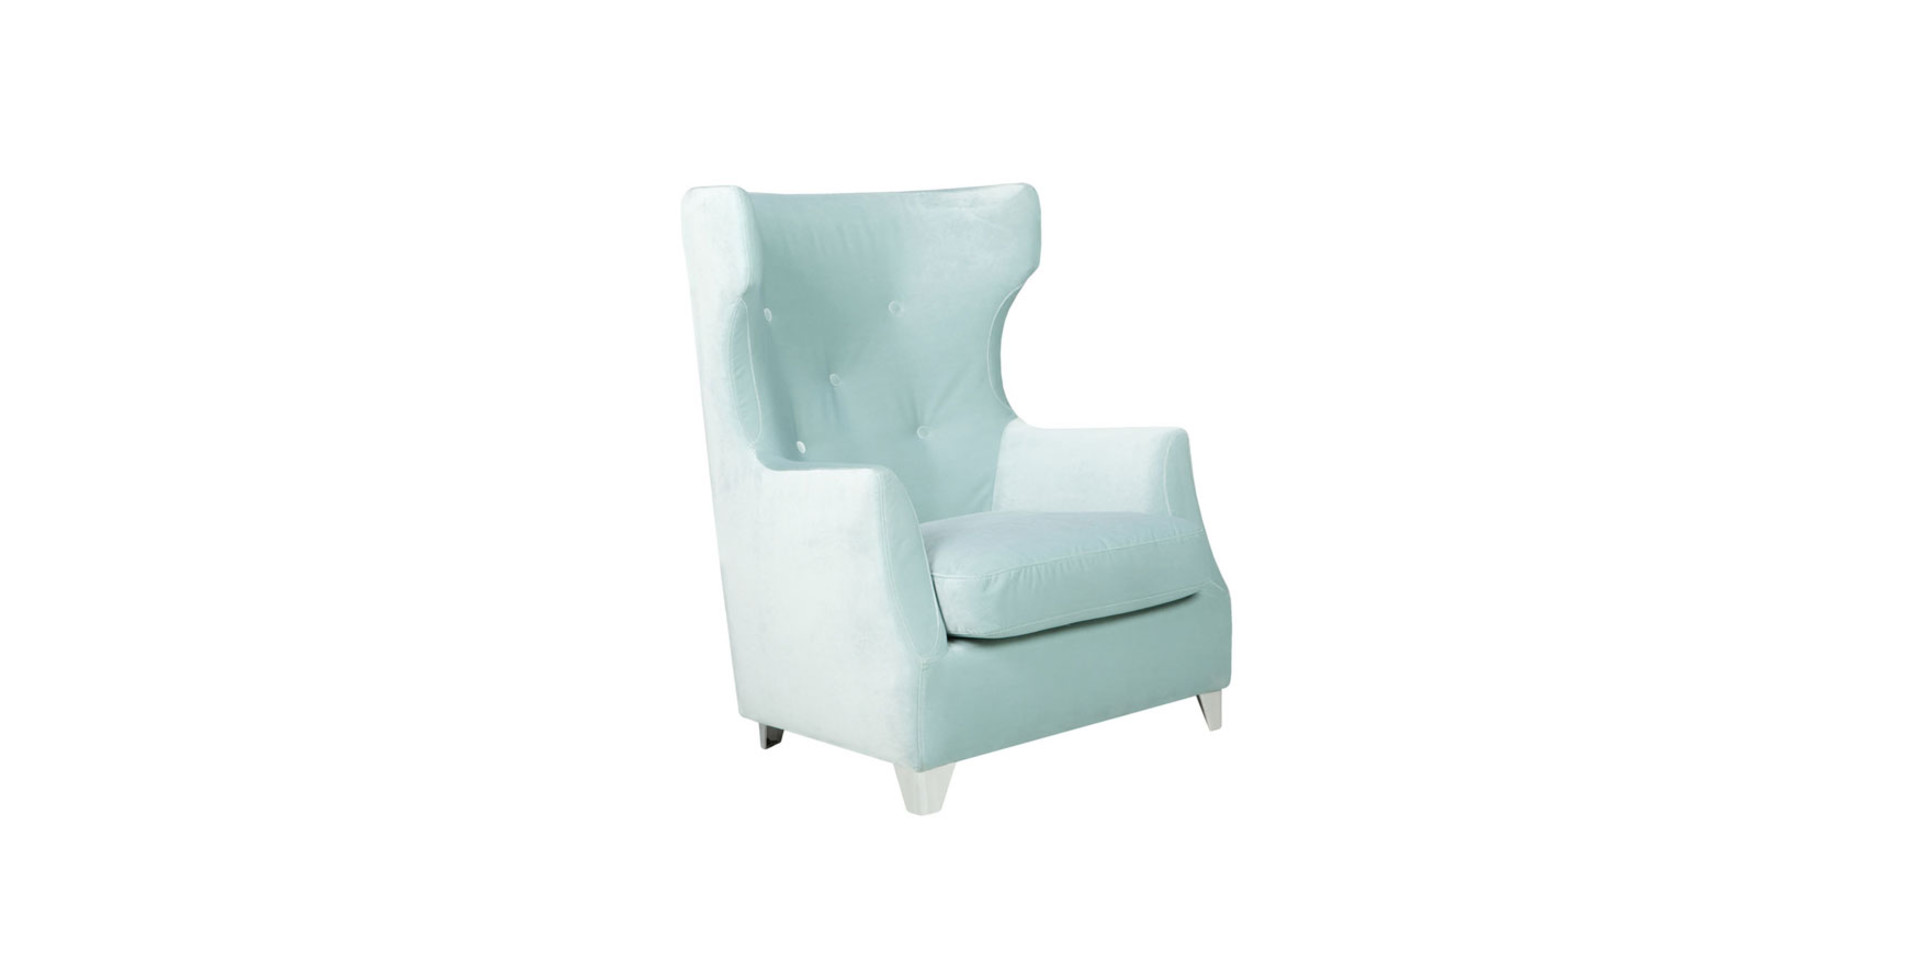 sits-rose-fauteuil-armchair_high_classic_velvet13_light_turquoise_2